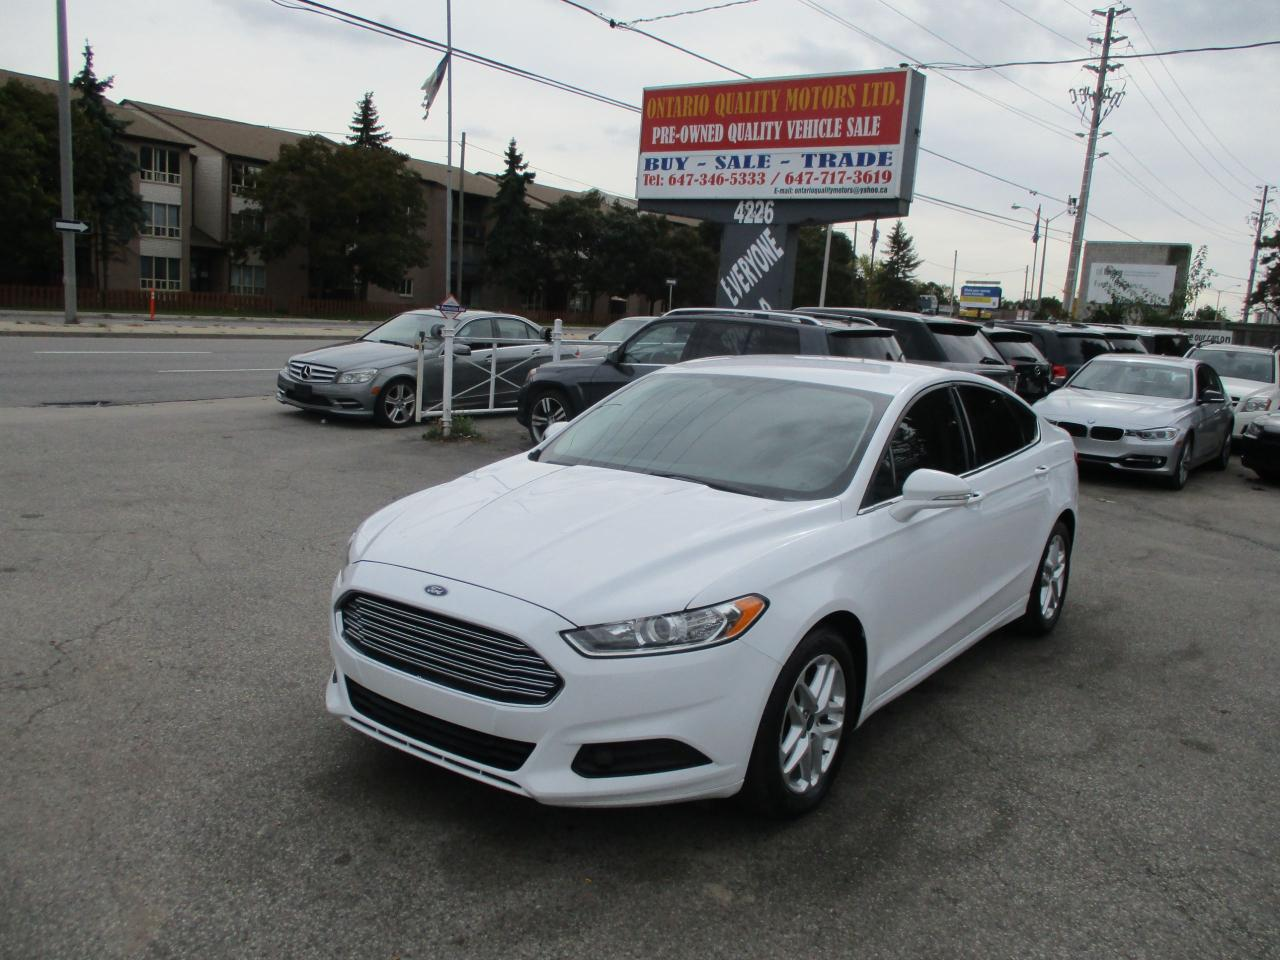 Used 2014 Ford Fusion Se For Sale In Toronto Ontario